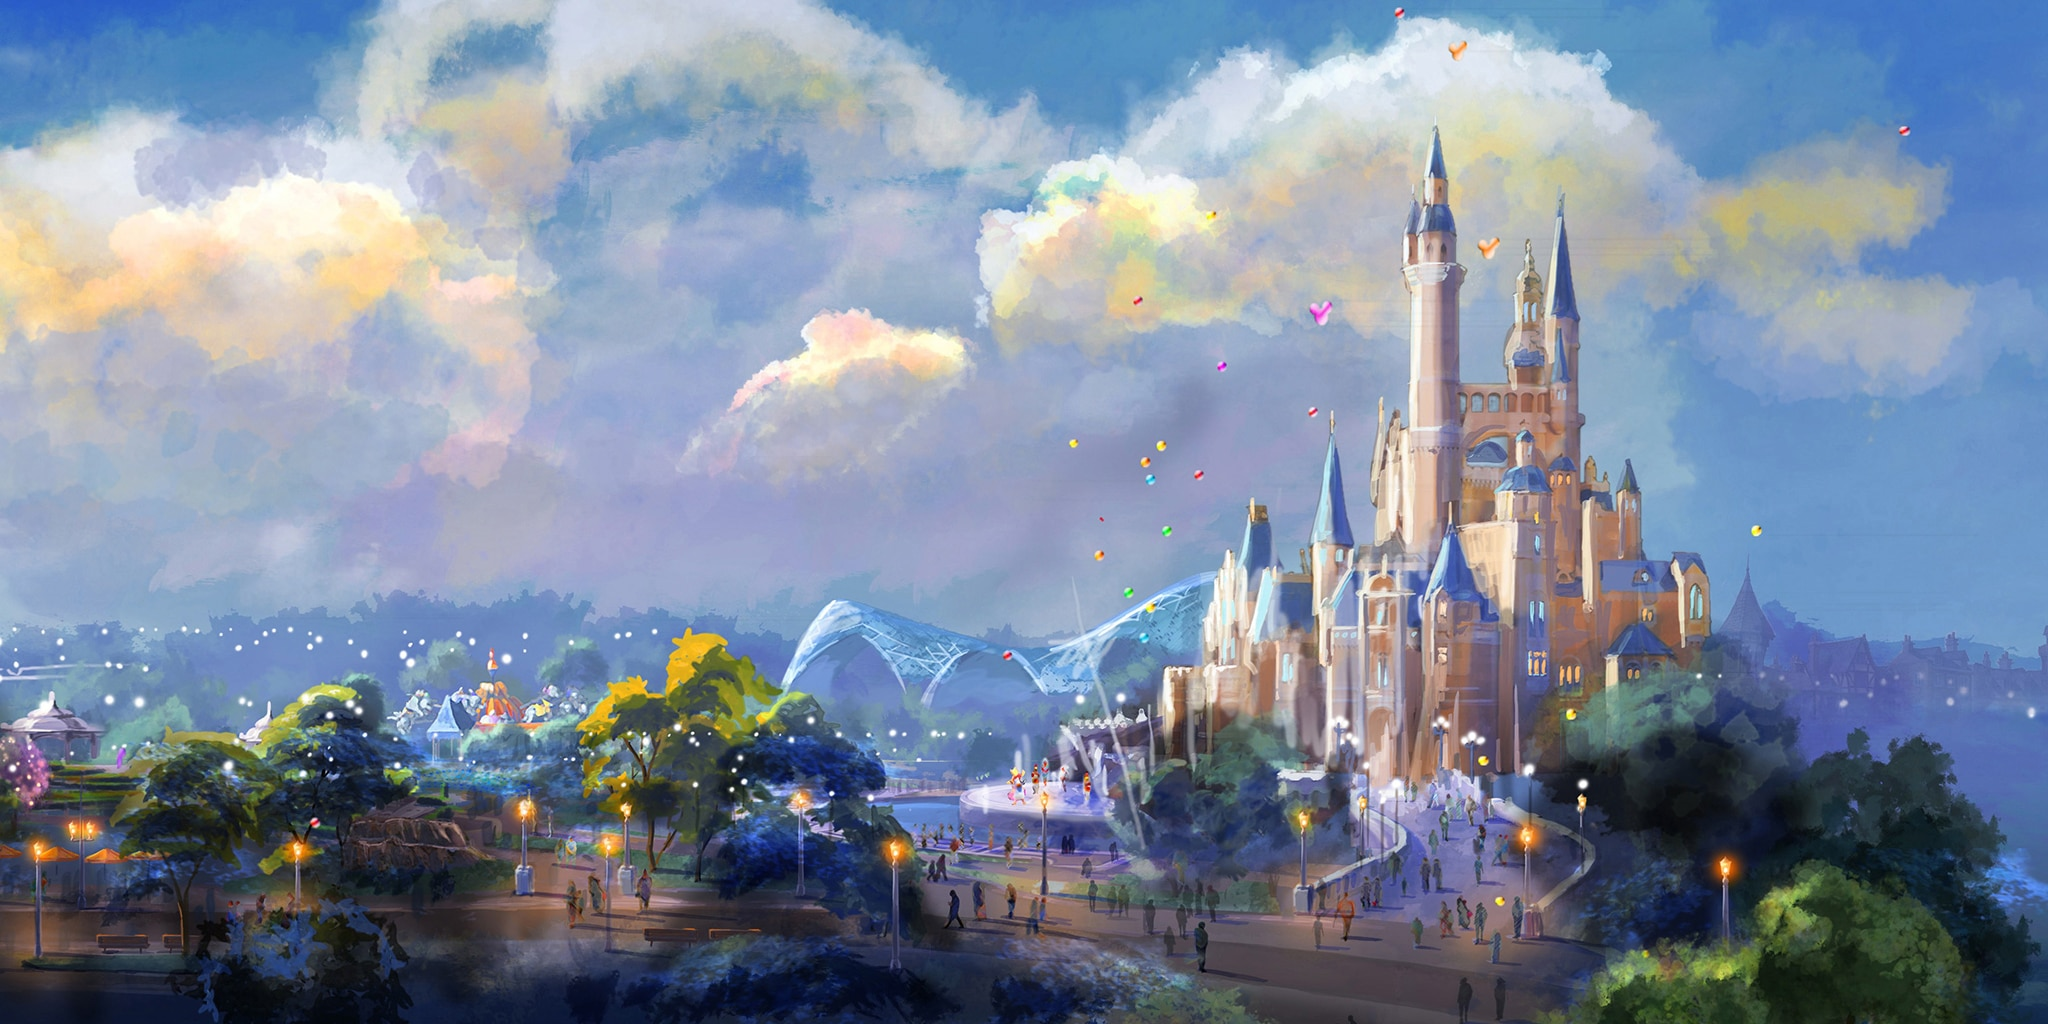 An illustration of Enchanted Storybook Castle at Shanghai Disneyland